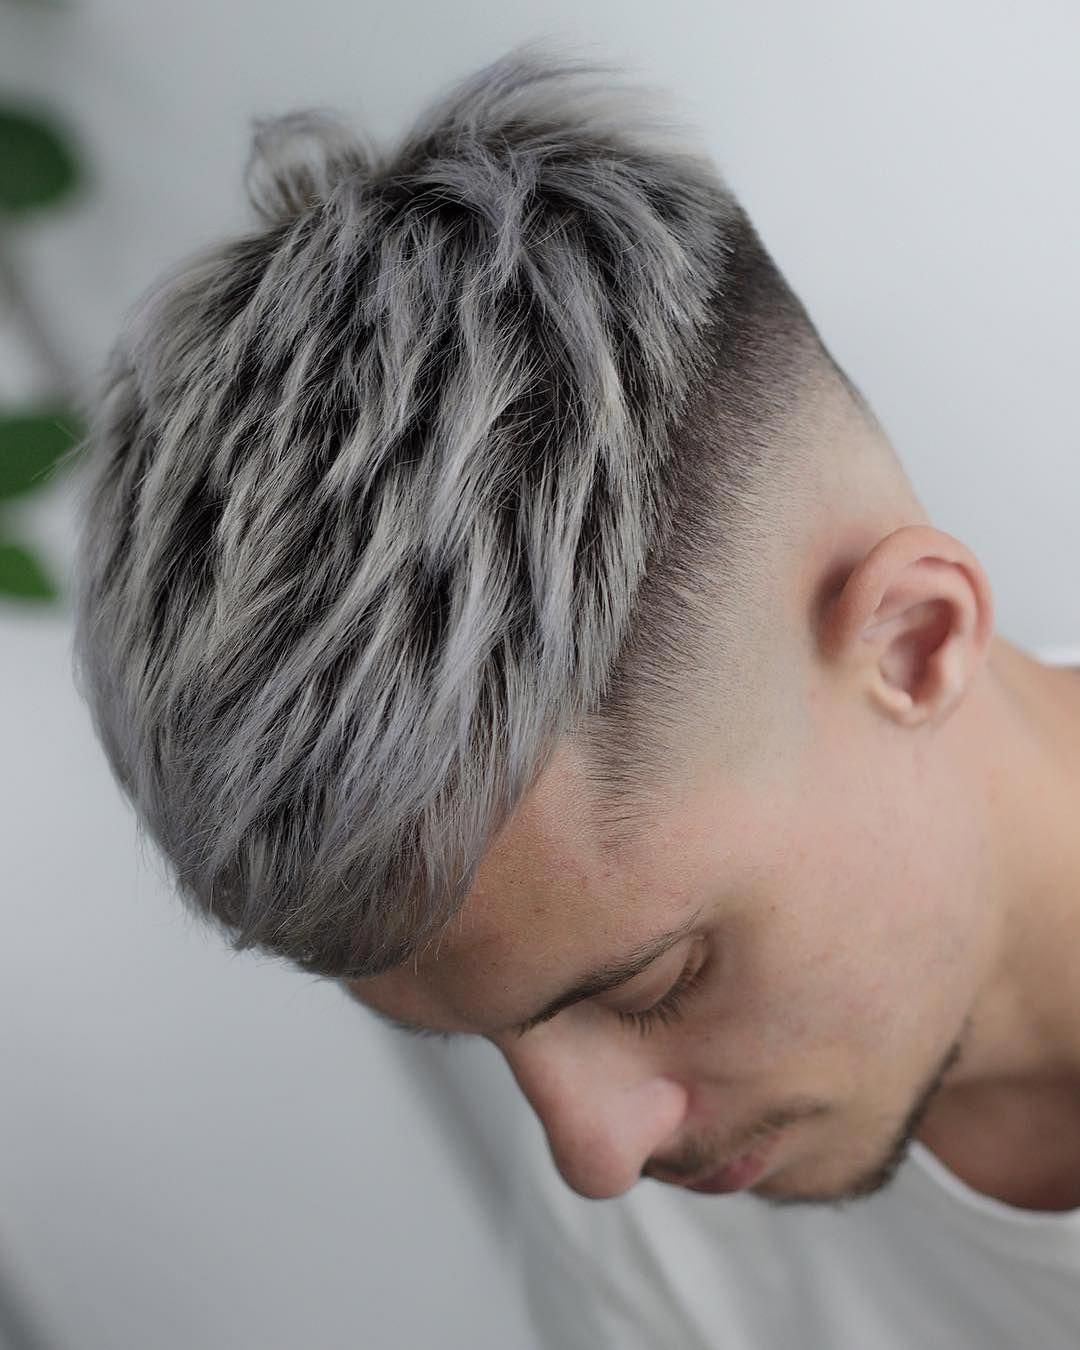 Check This Out Shorthairstylesformen Men Hair Color Mens Hairstyles Short Dyed Hair Men